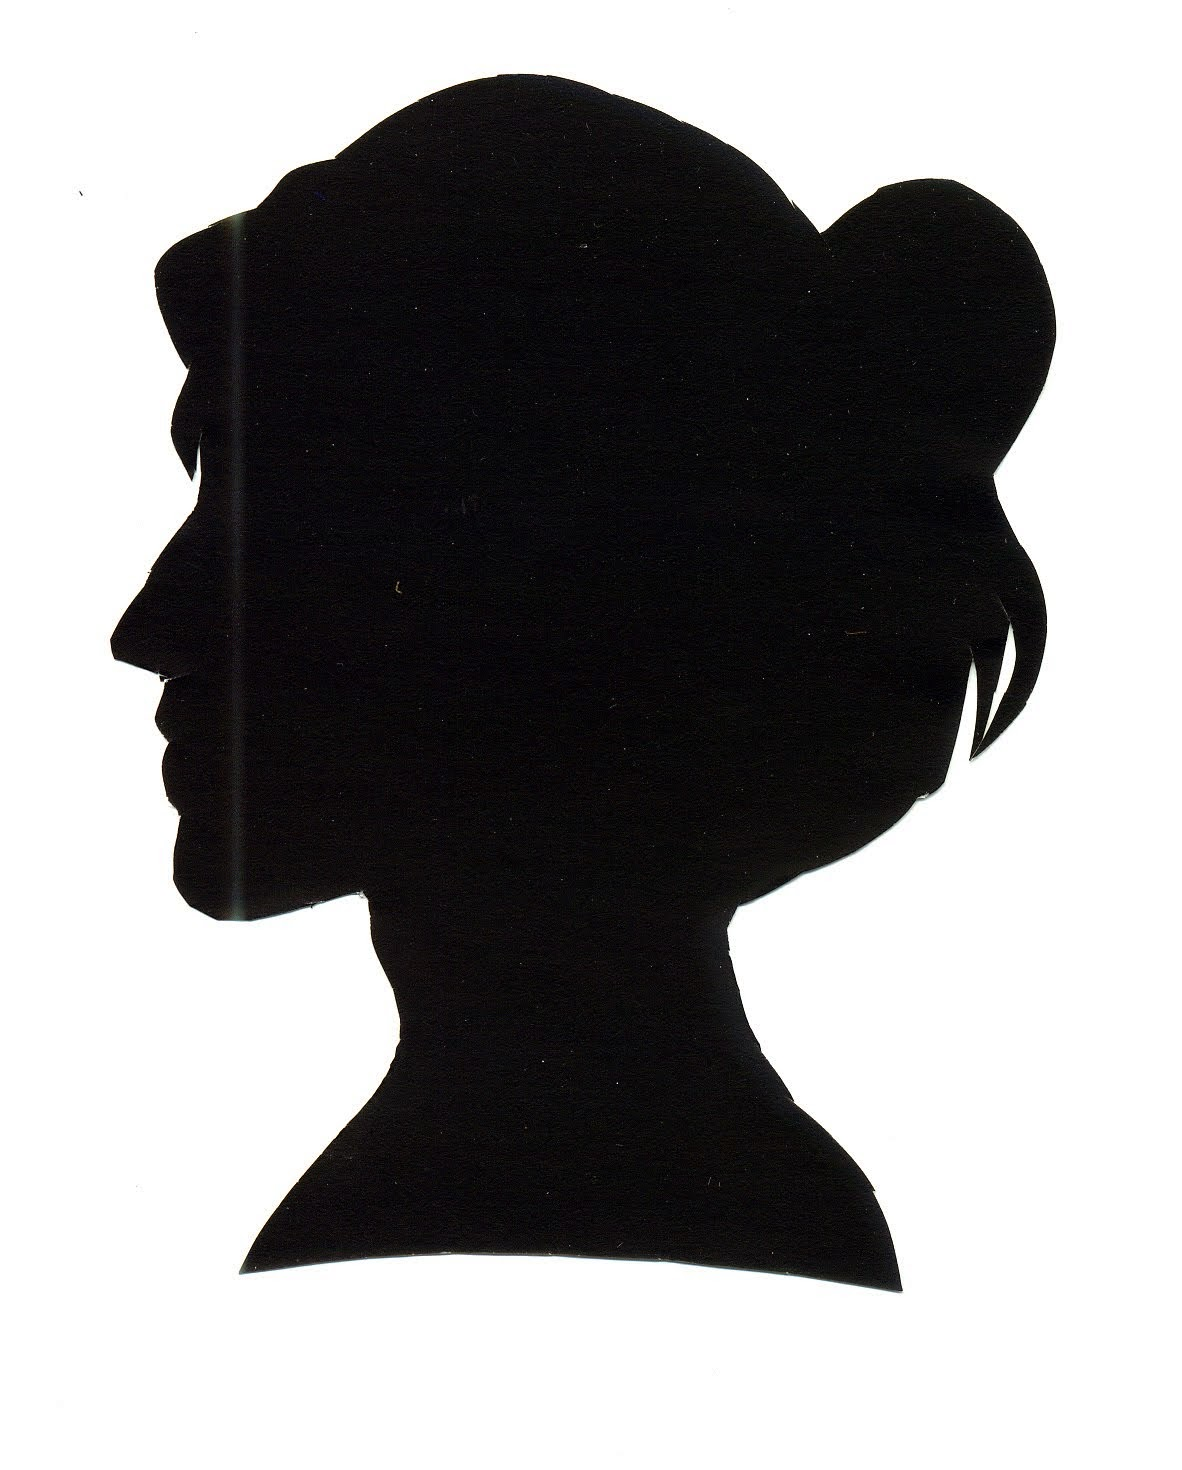 Silhouette by Ingrid Sylvestre